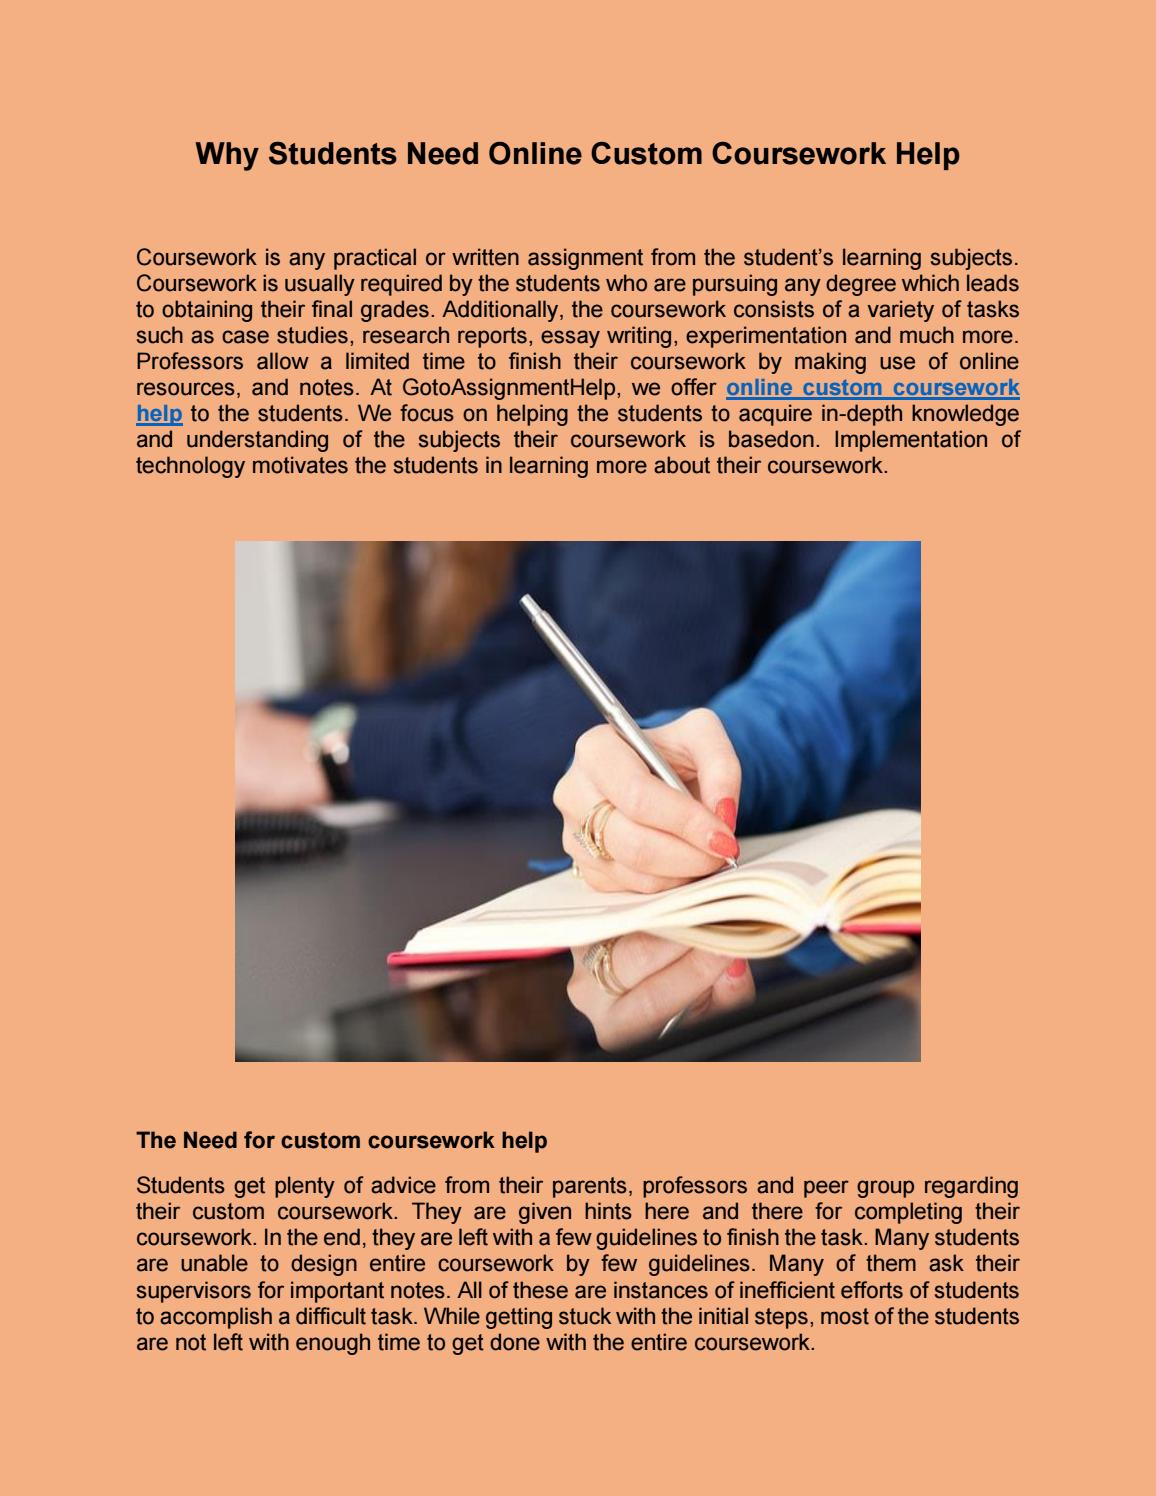 Custom course work writer site uk essay on should we keep pets at home